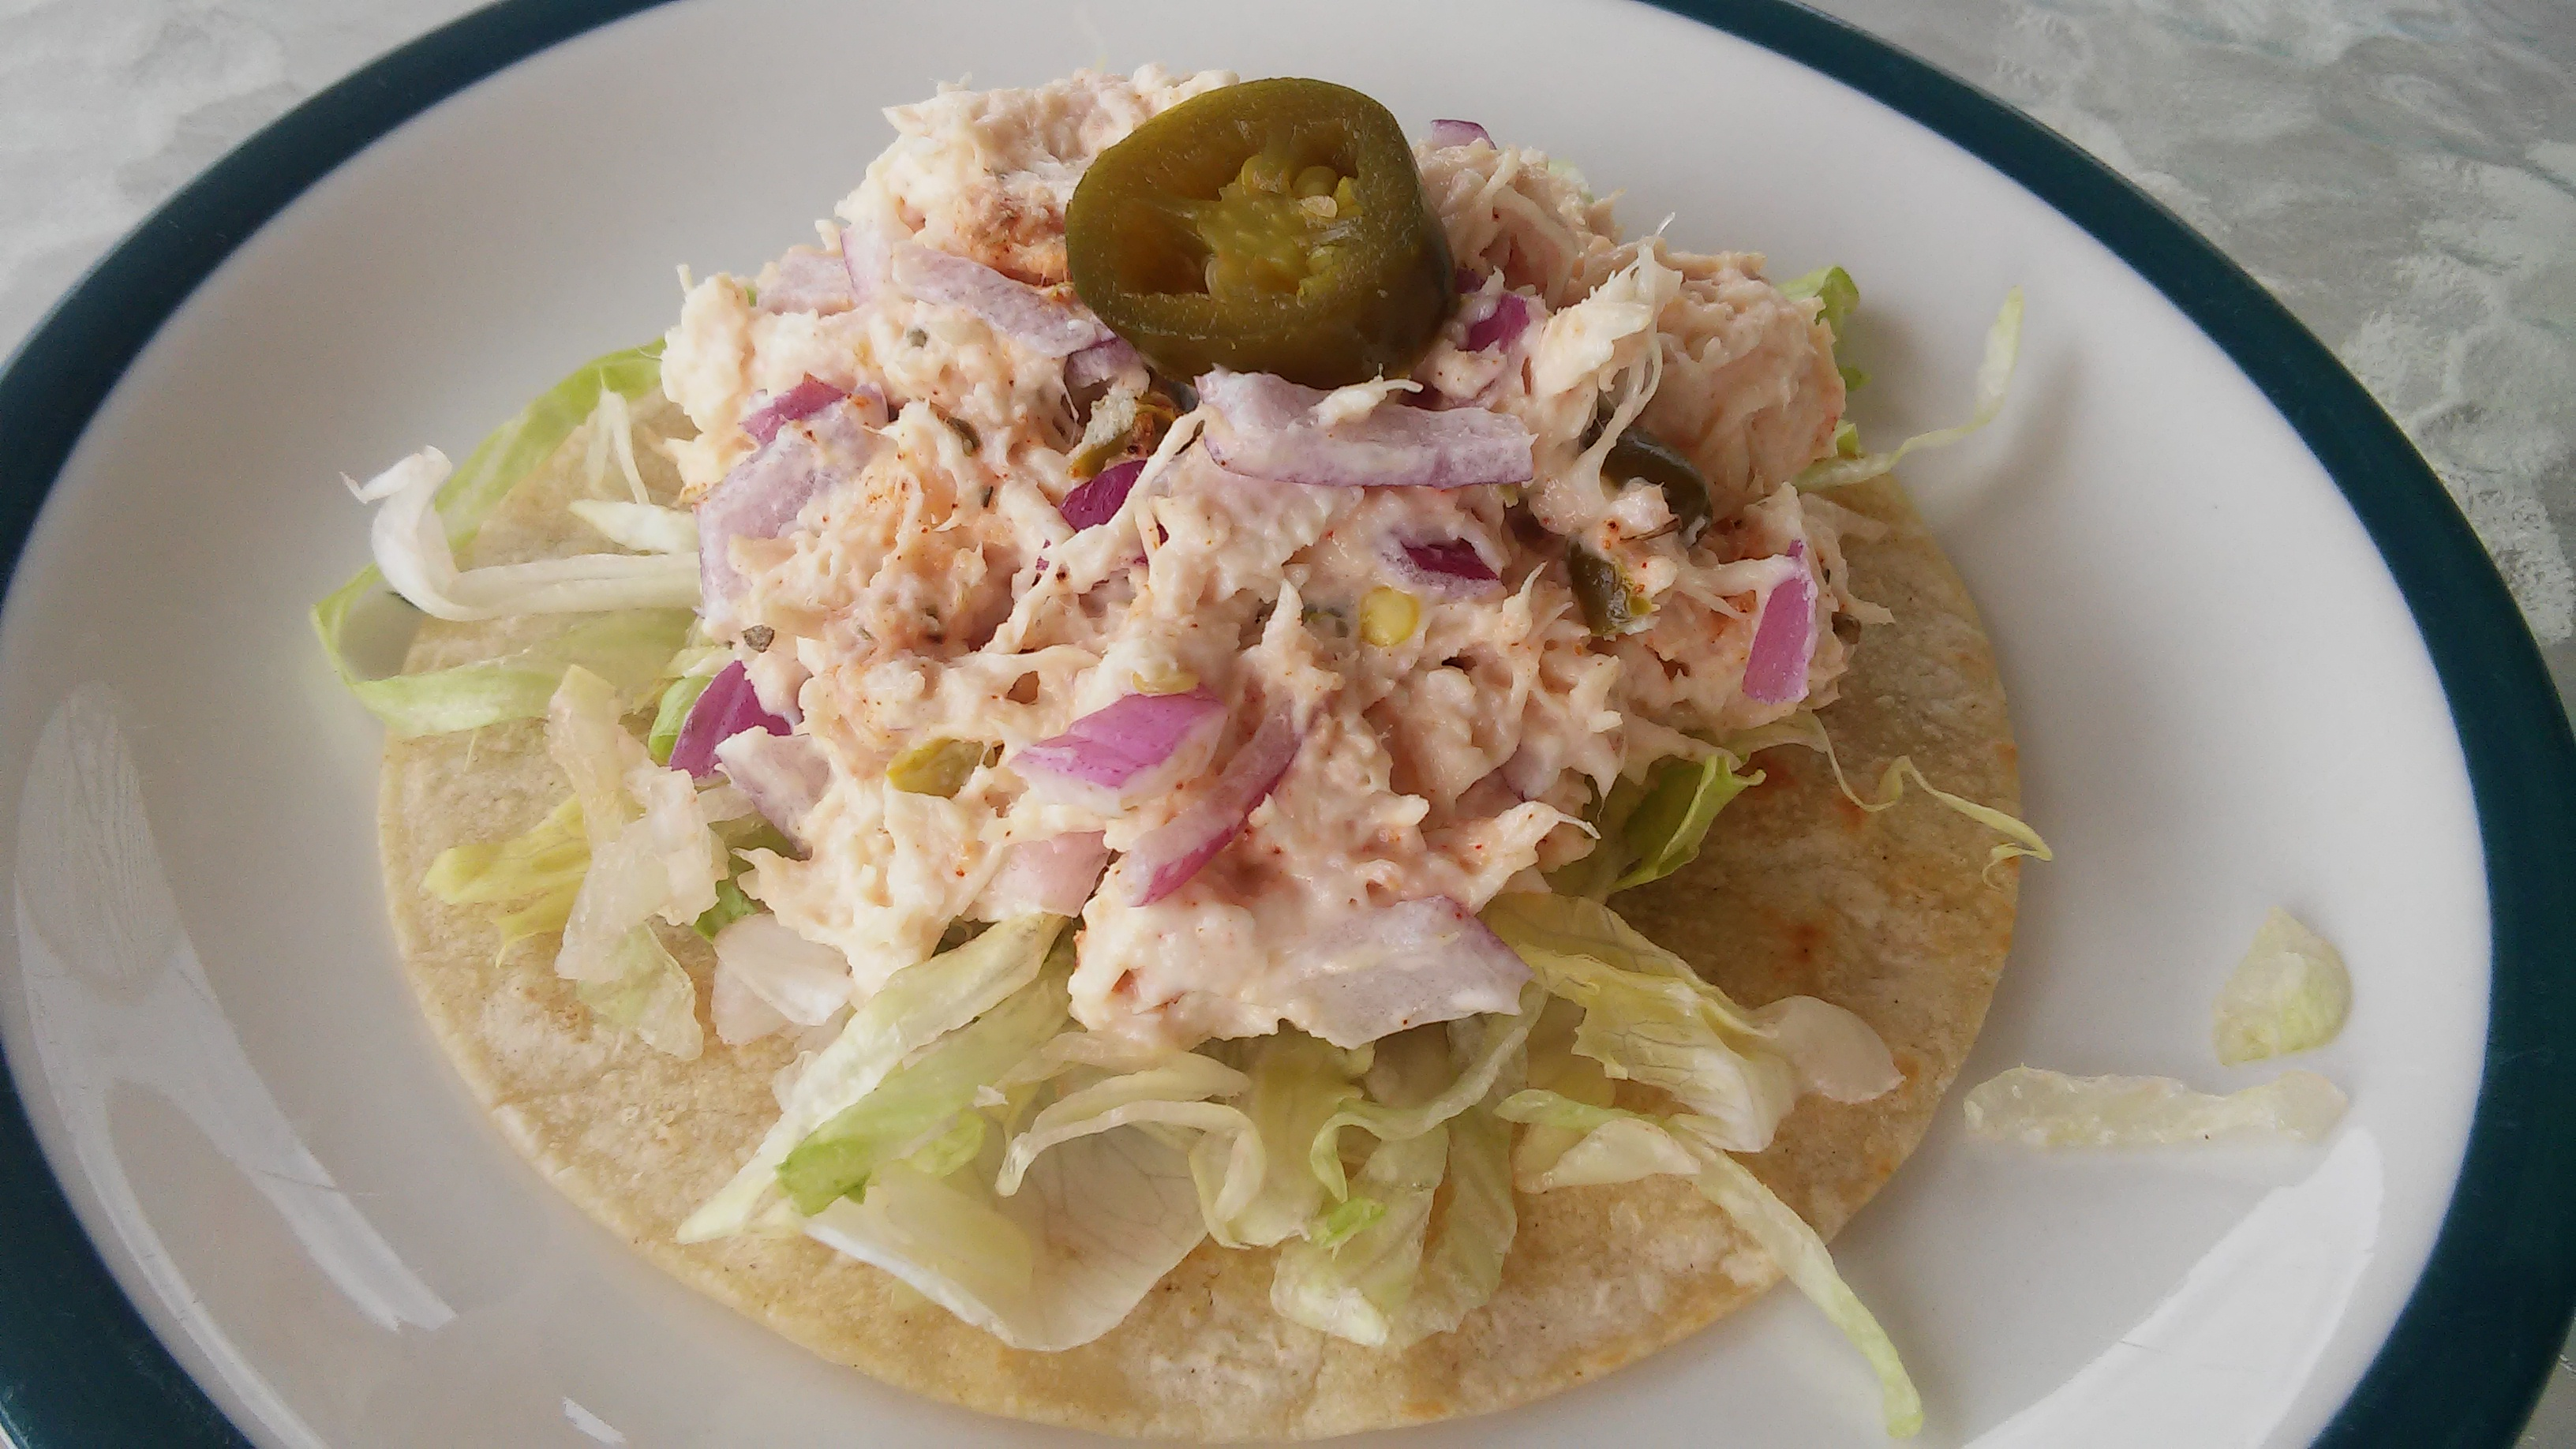 Twisted Chicken Salad with Tostadas Tammy Lynn